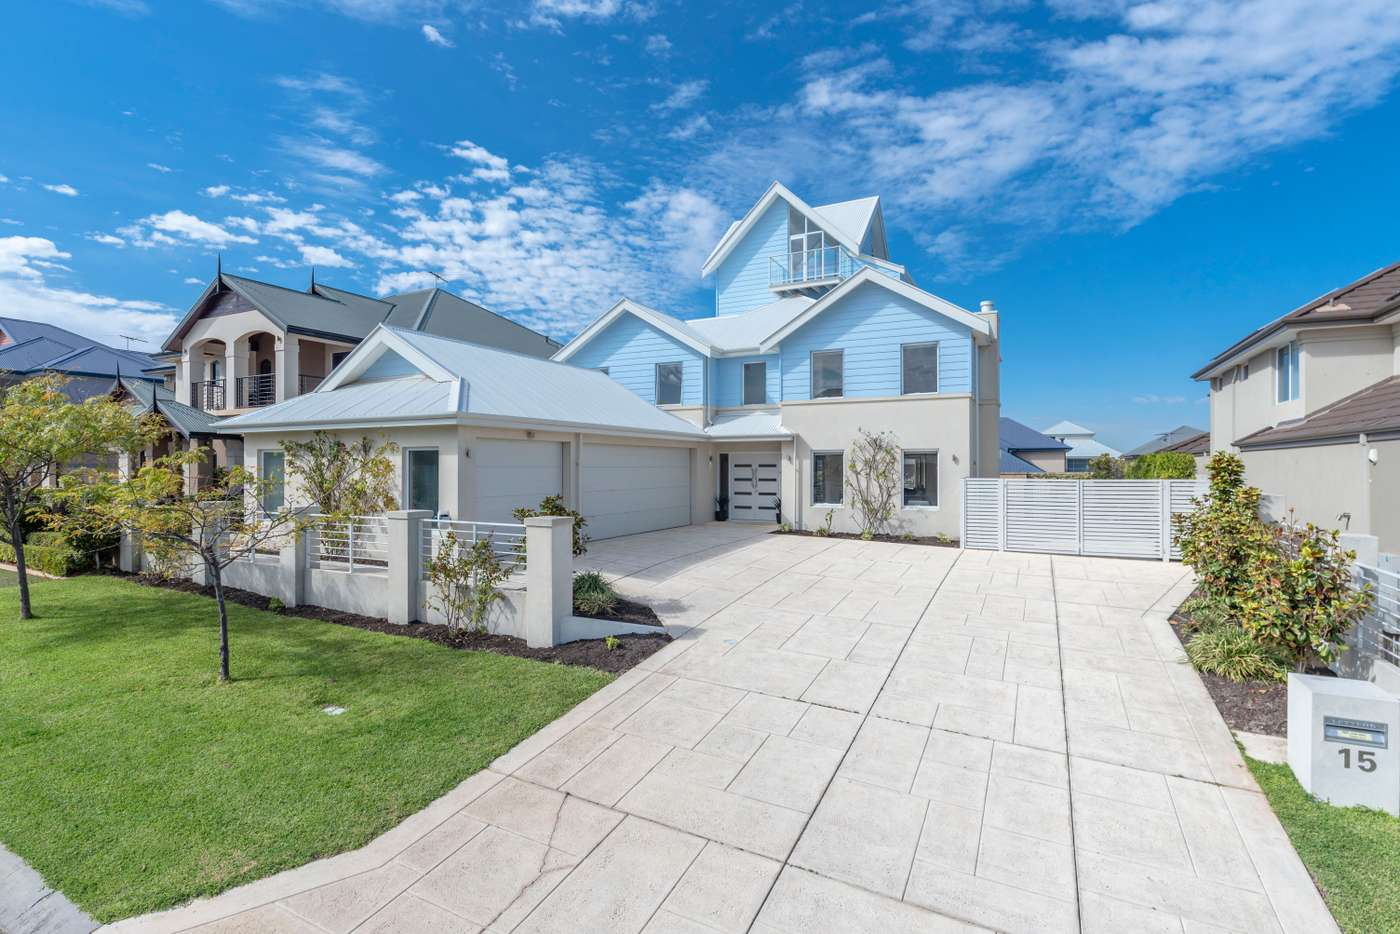 Main view of Homely house listing, 15 Canarias Way, Hillarys WA 6025